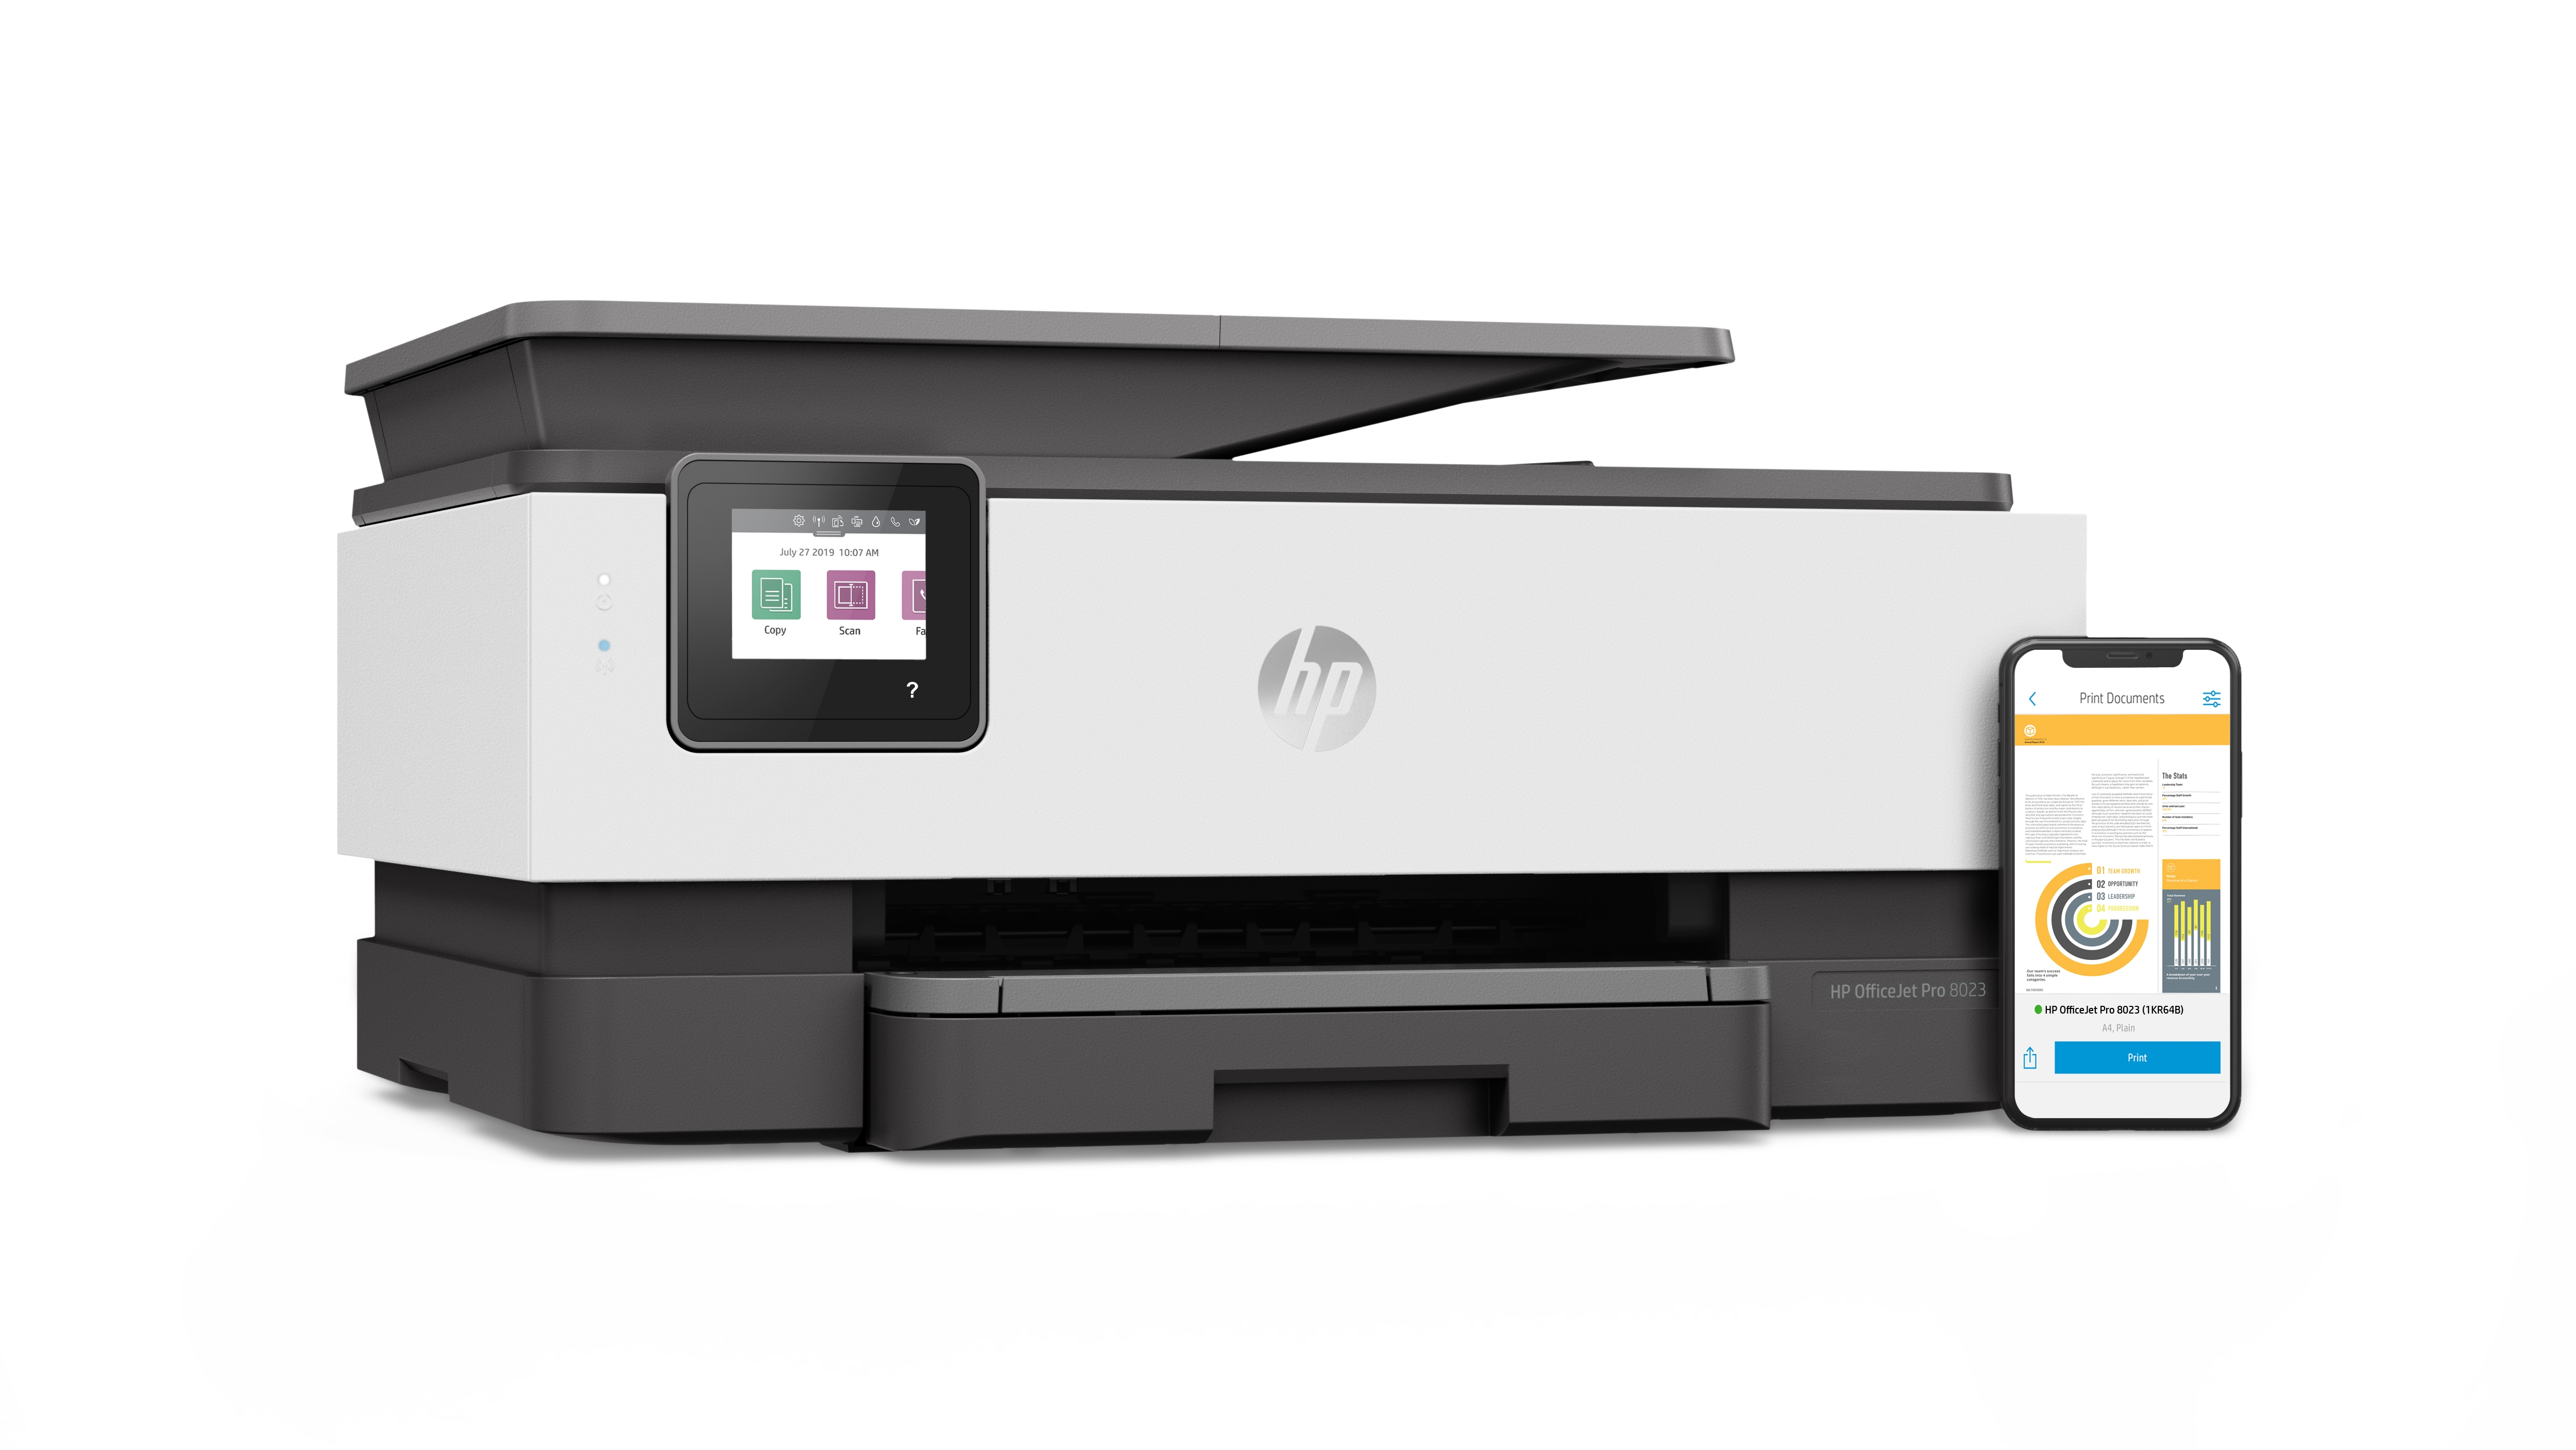 HP Officejet Pro 9013 AiO Printer (1KR49B)